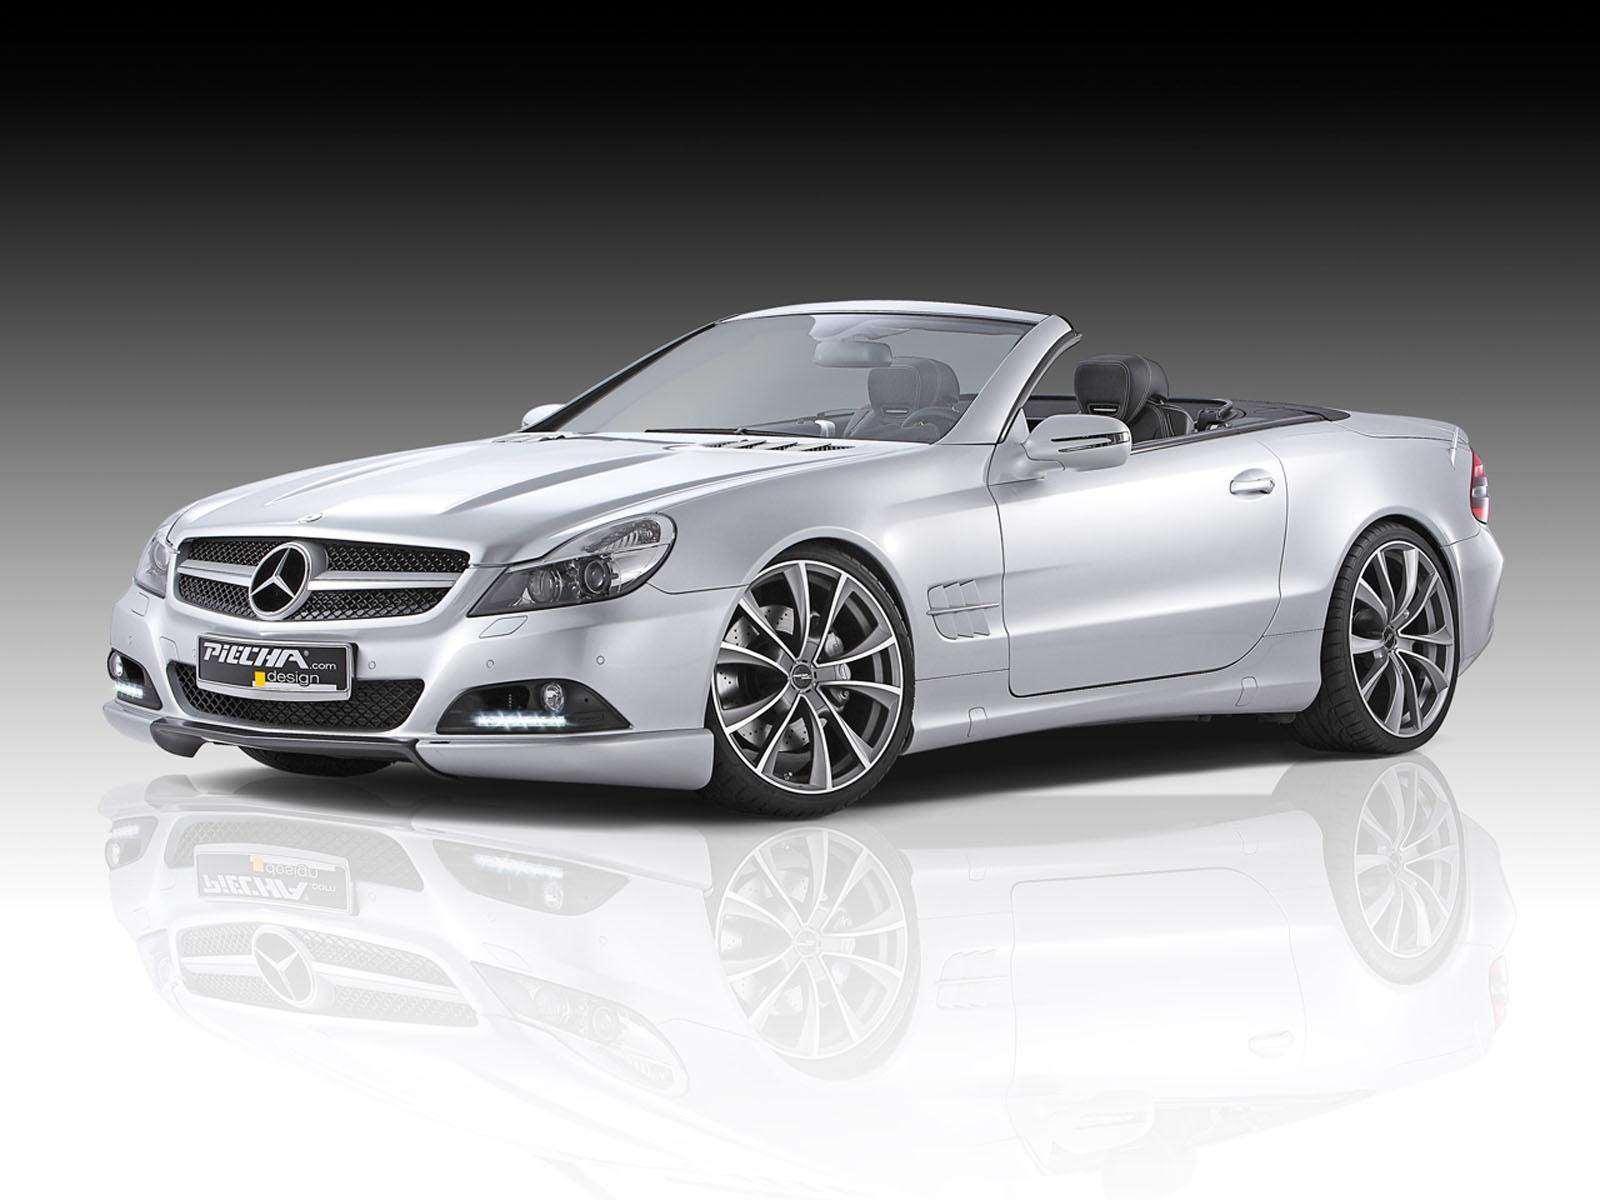 2011 mercedes benz sl class information and photos for 2011 mercedes benz s class